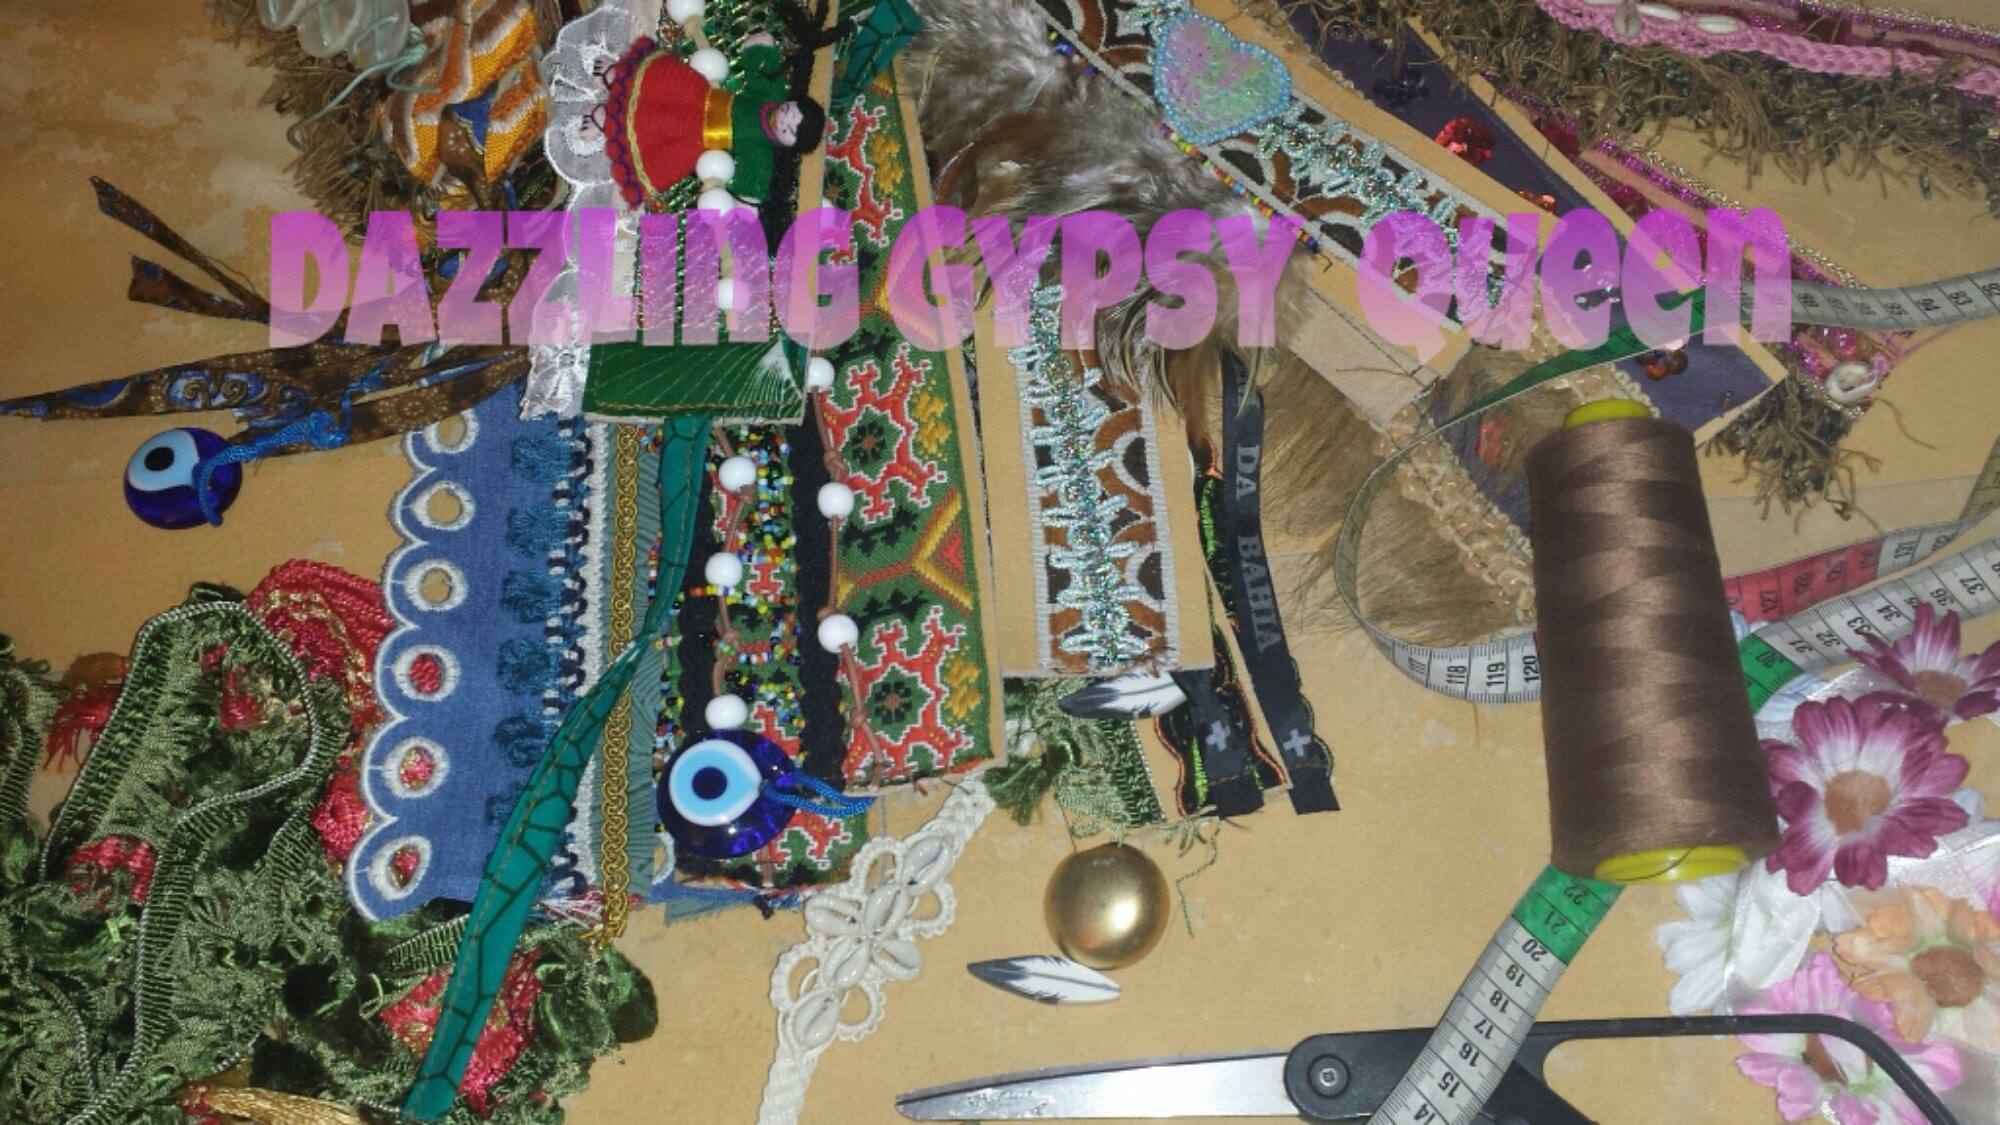 The making of Dazzling Gypsy Queen Ibiza Bootbelts